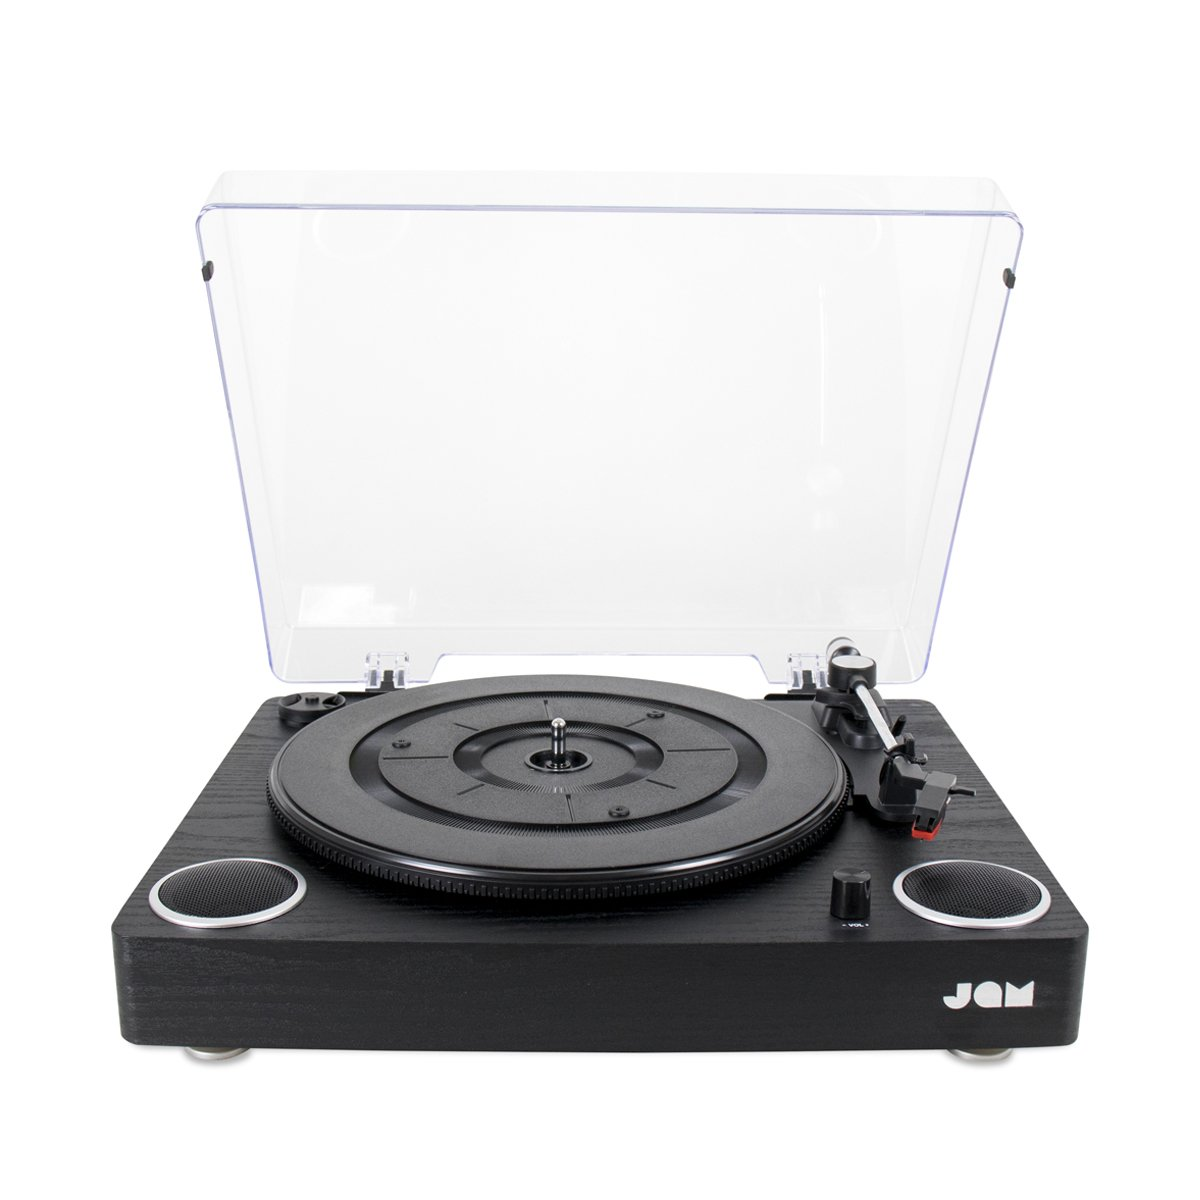 Jam Play Turntable Vinyl Record Player, 3 Speed Belt Drive